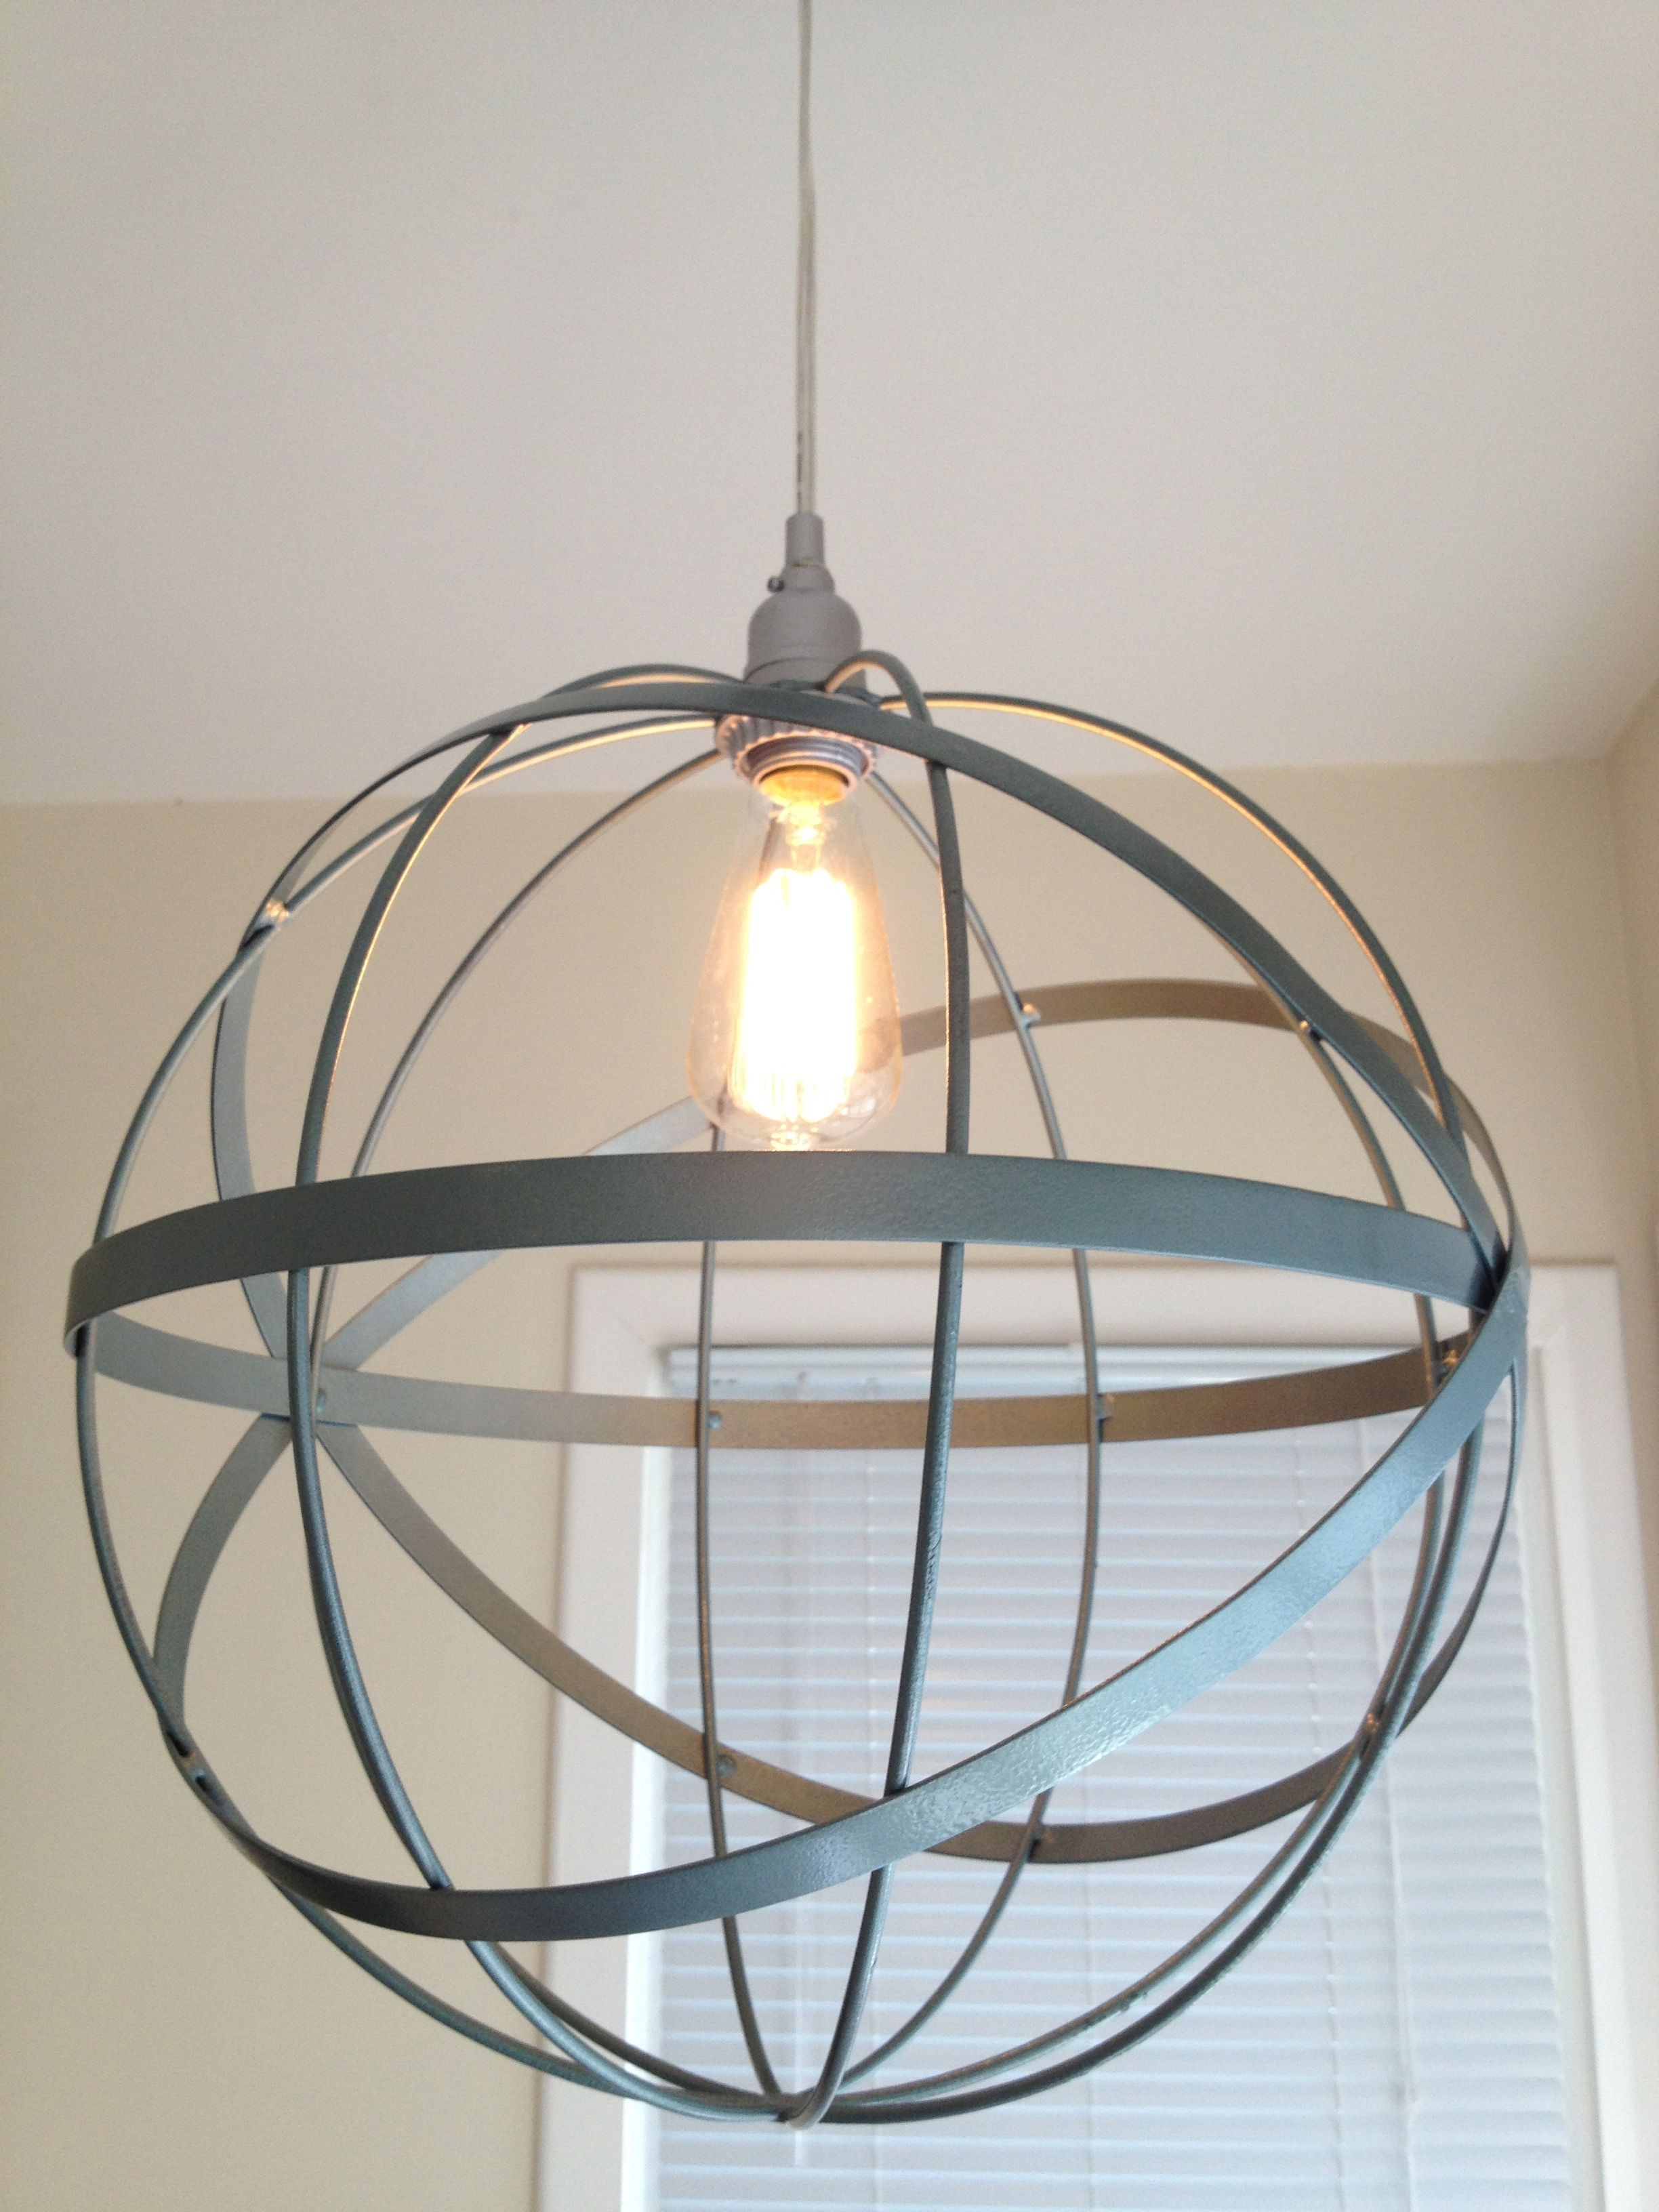 DIY orb pendant light Unfortunately it does